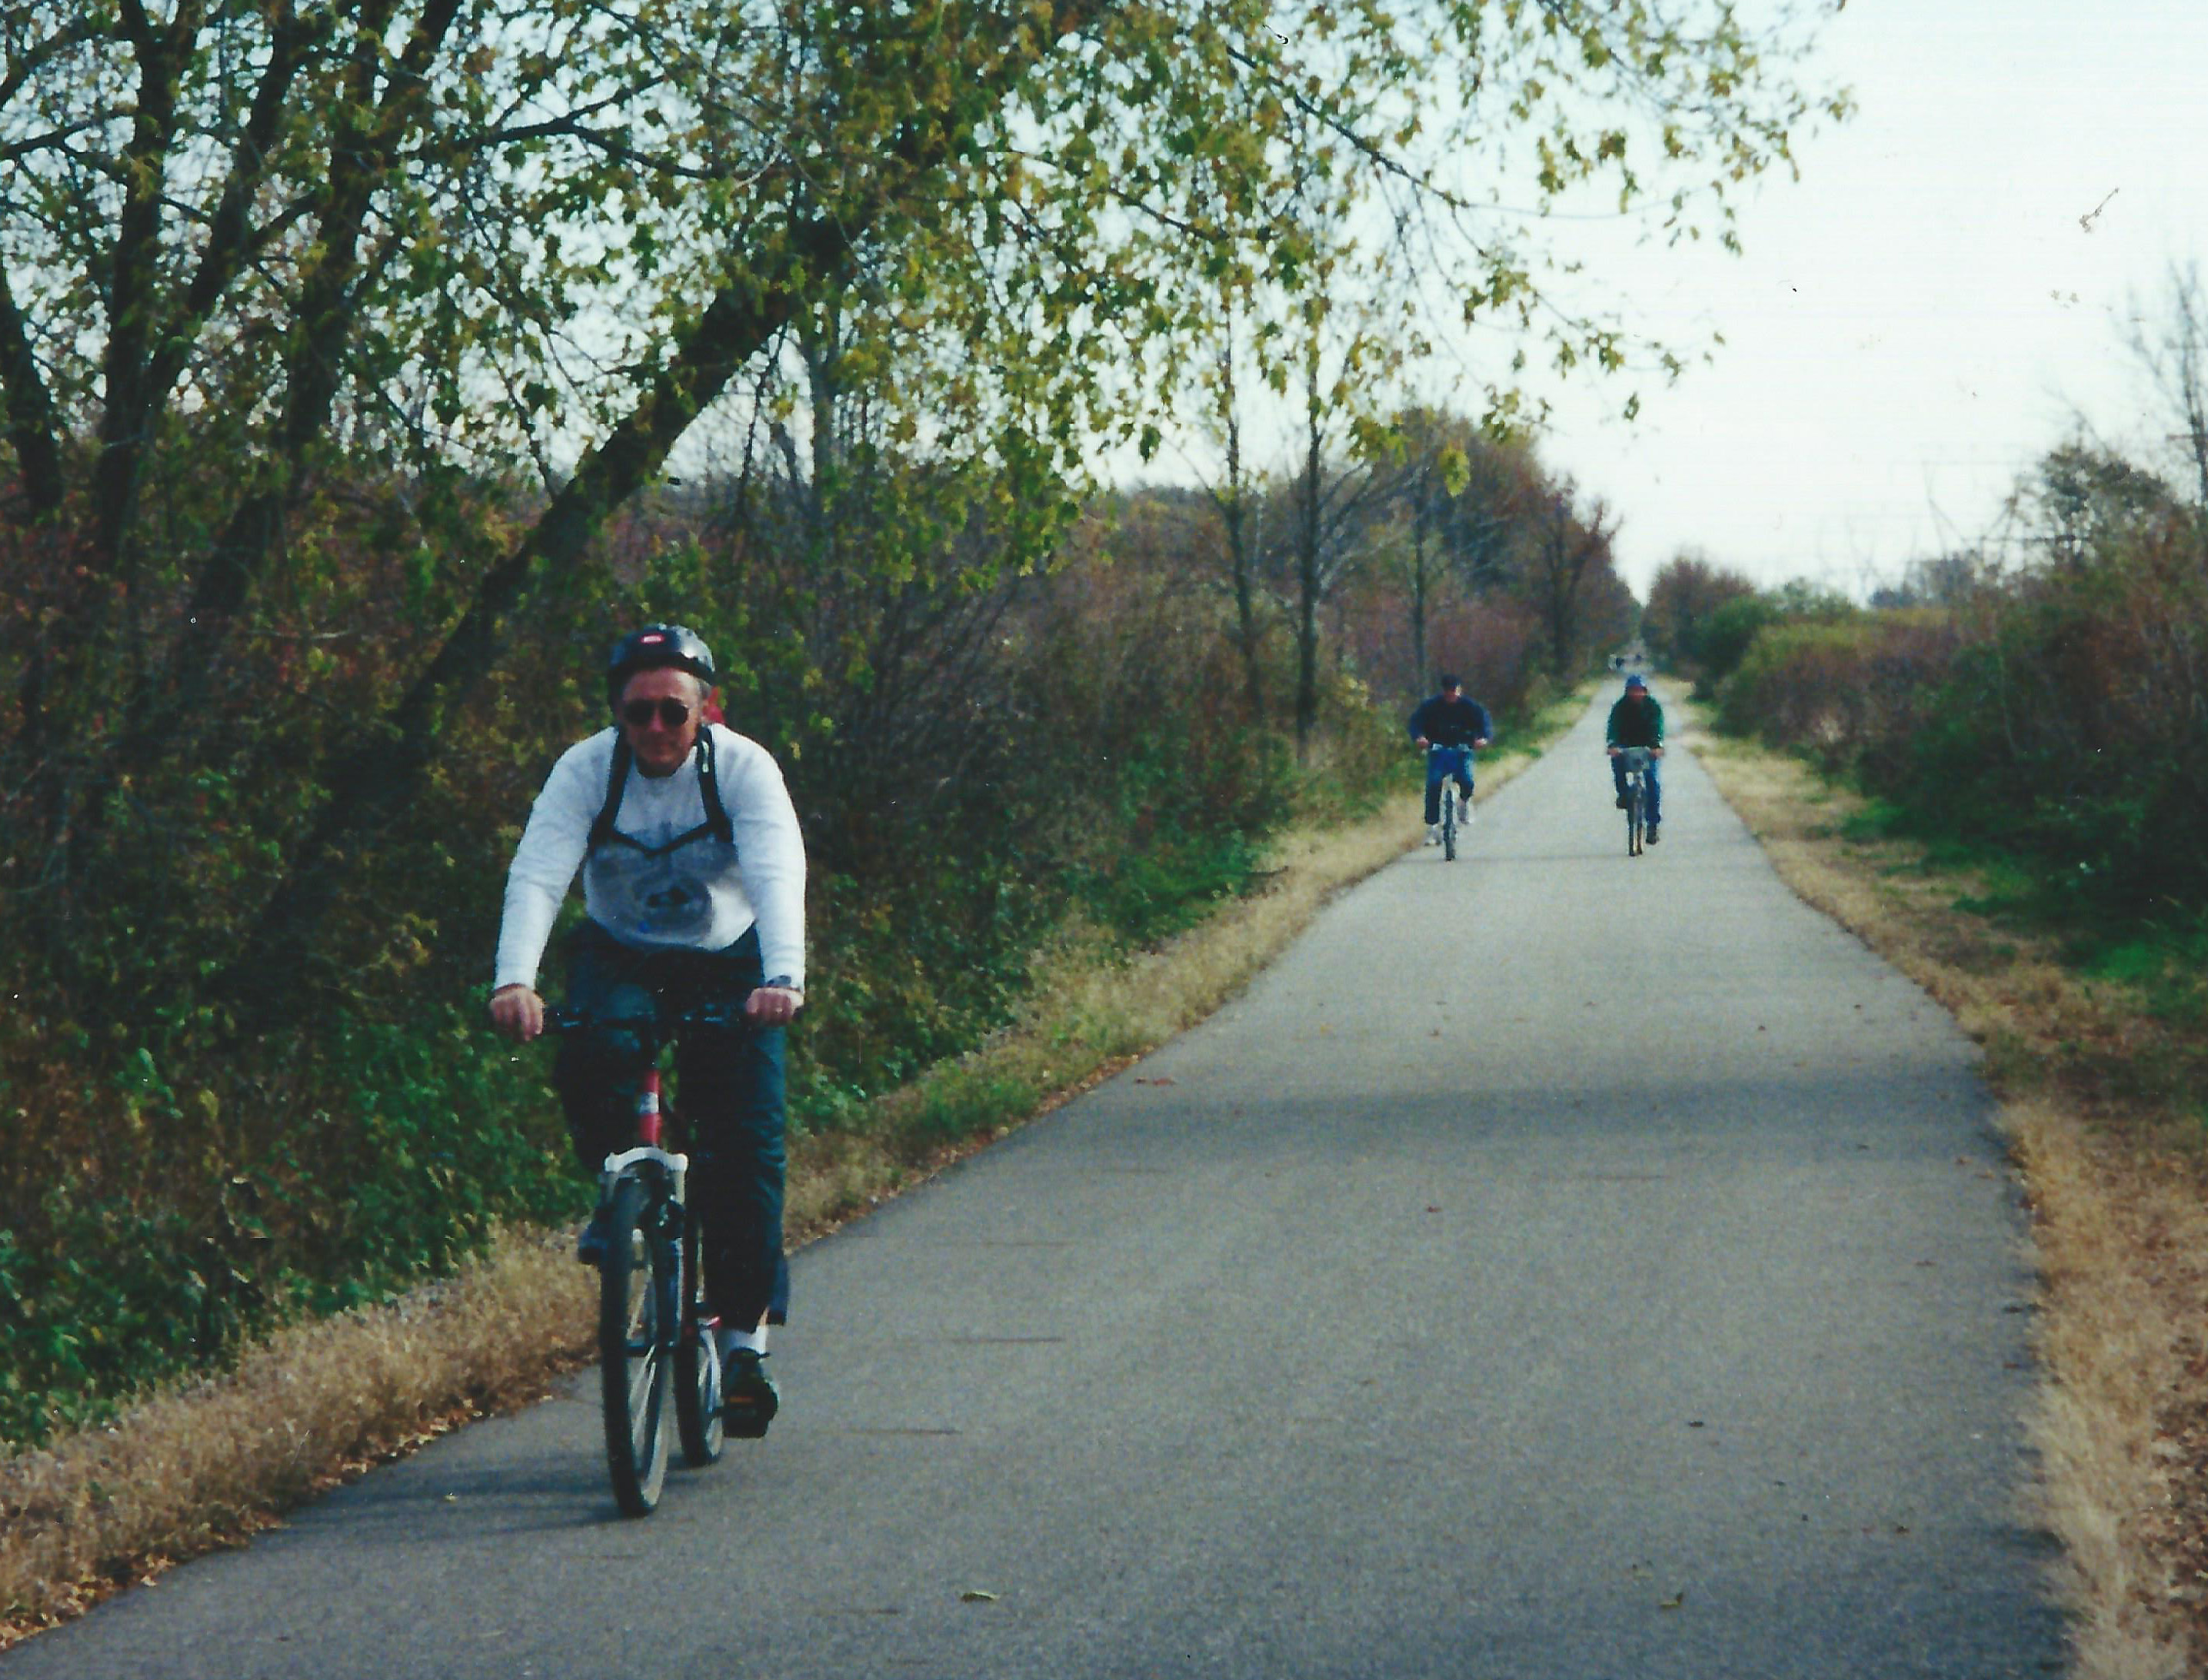 2. Riders Continuing West